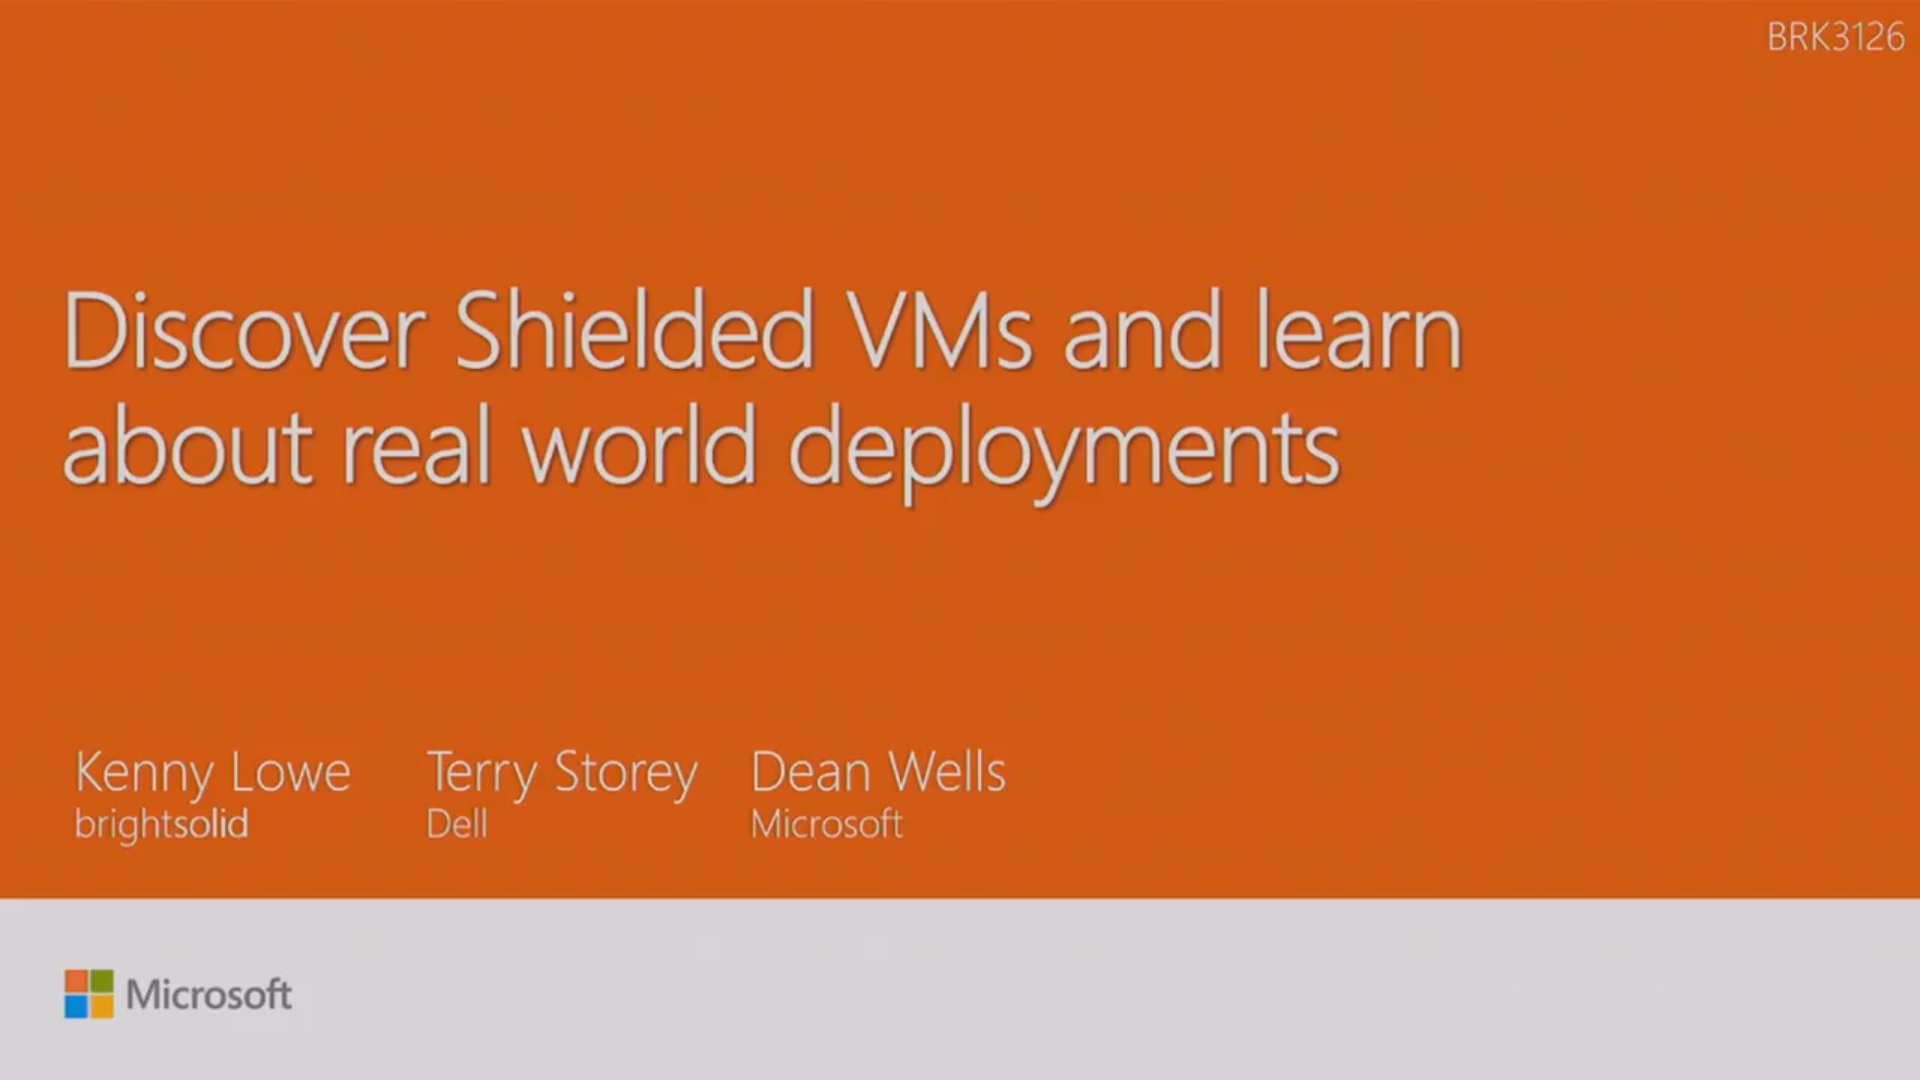 Ignite 2016 – Discover Shielded VMs And Learn About Real